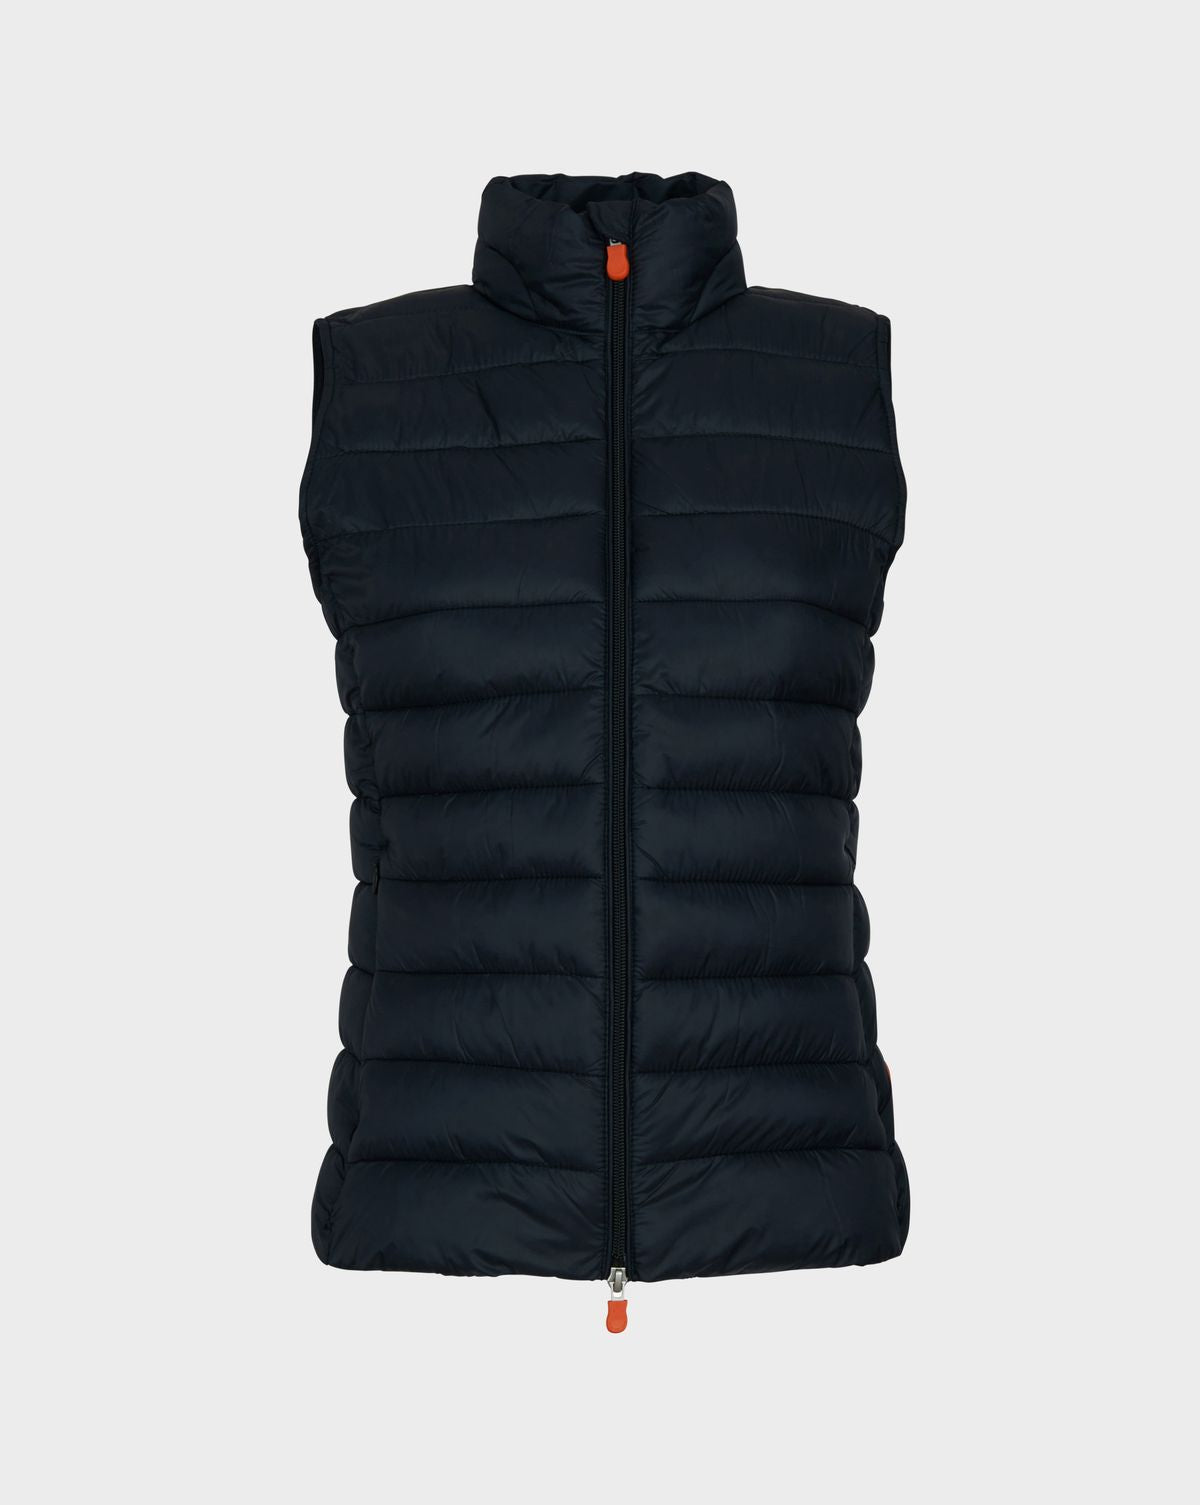 Save The Duck Womens Giga vest in Black